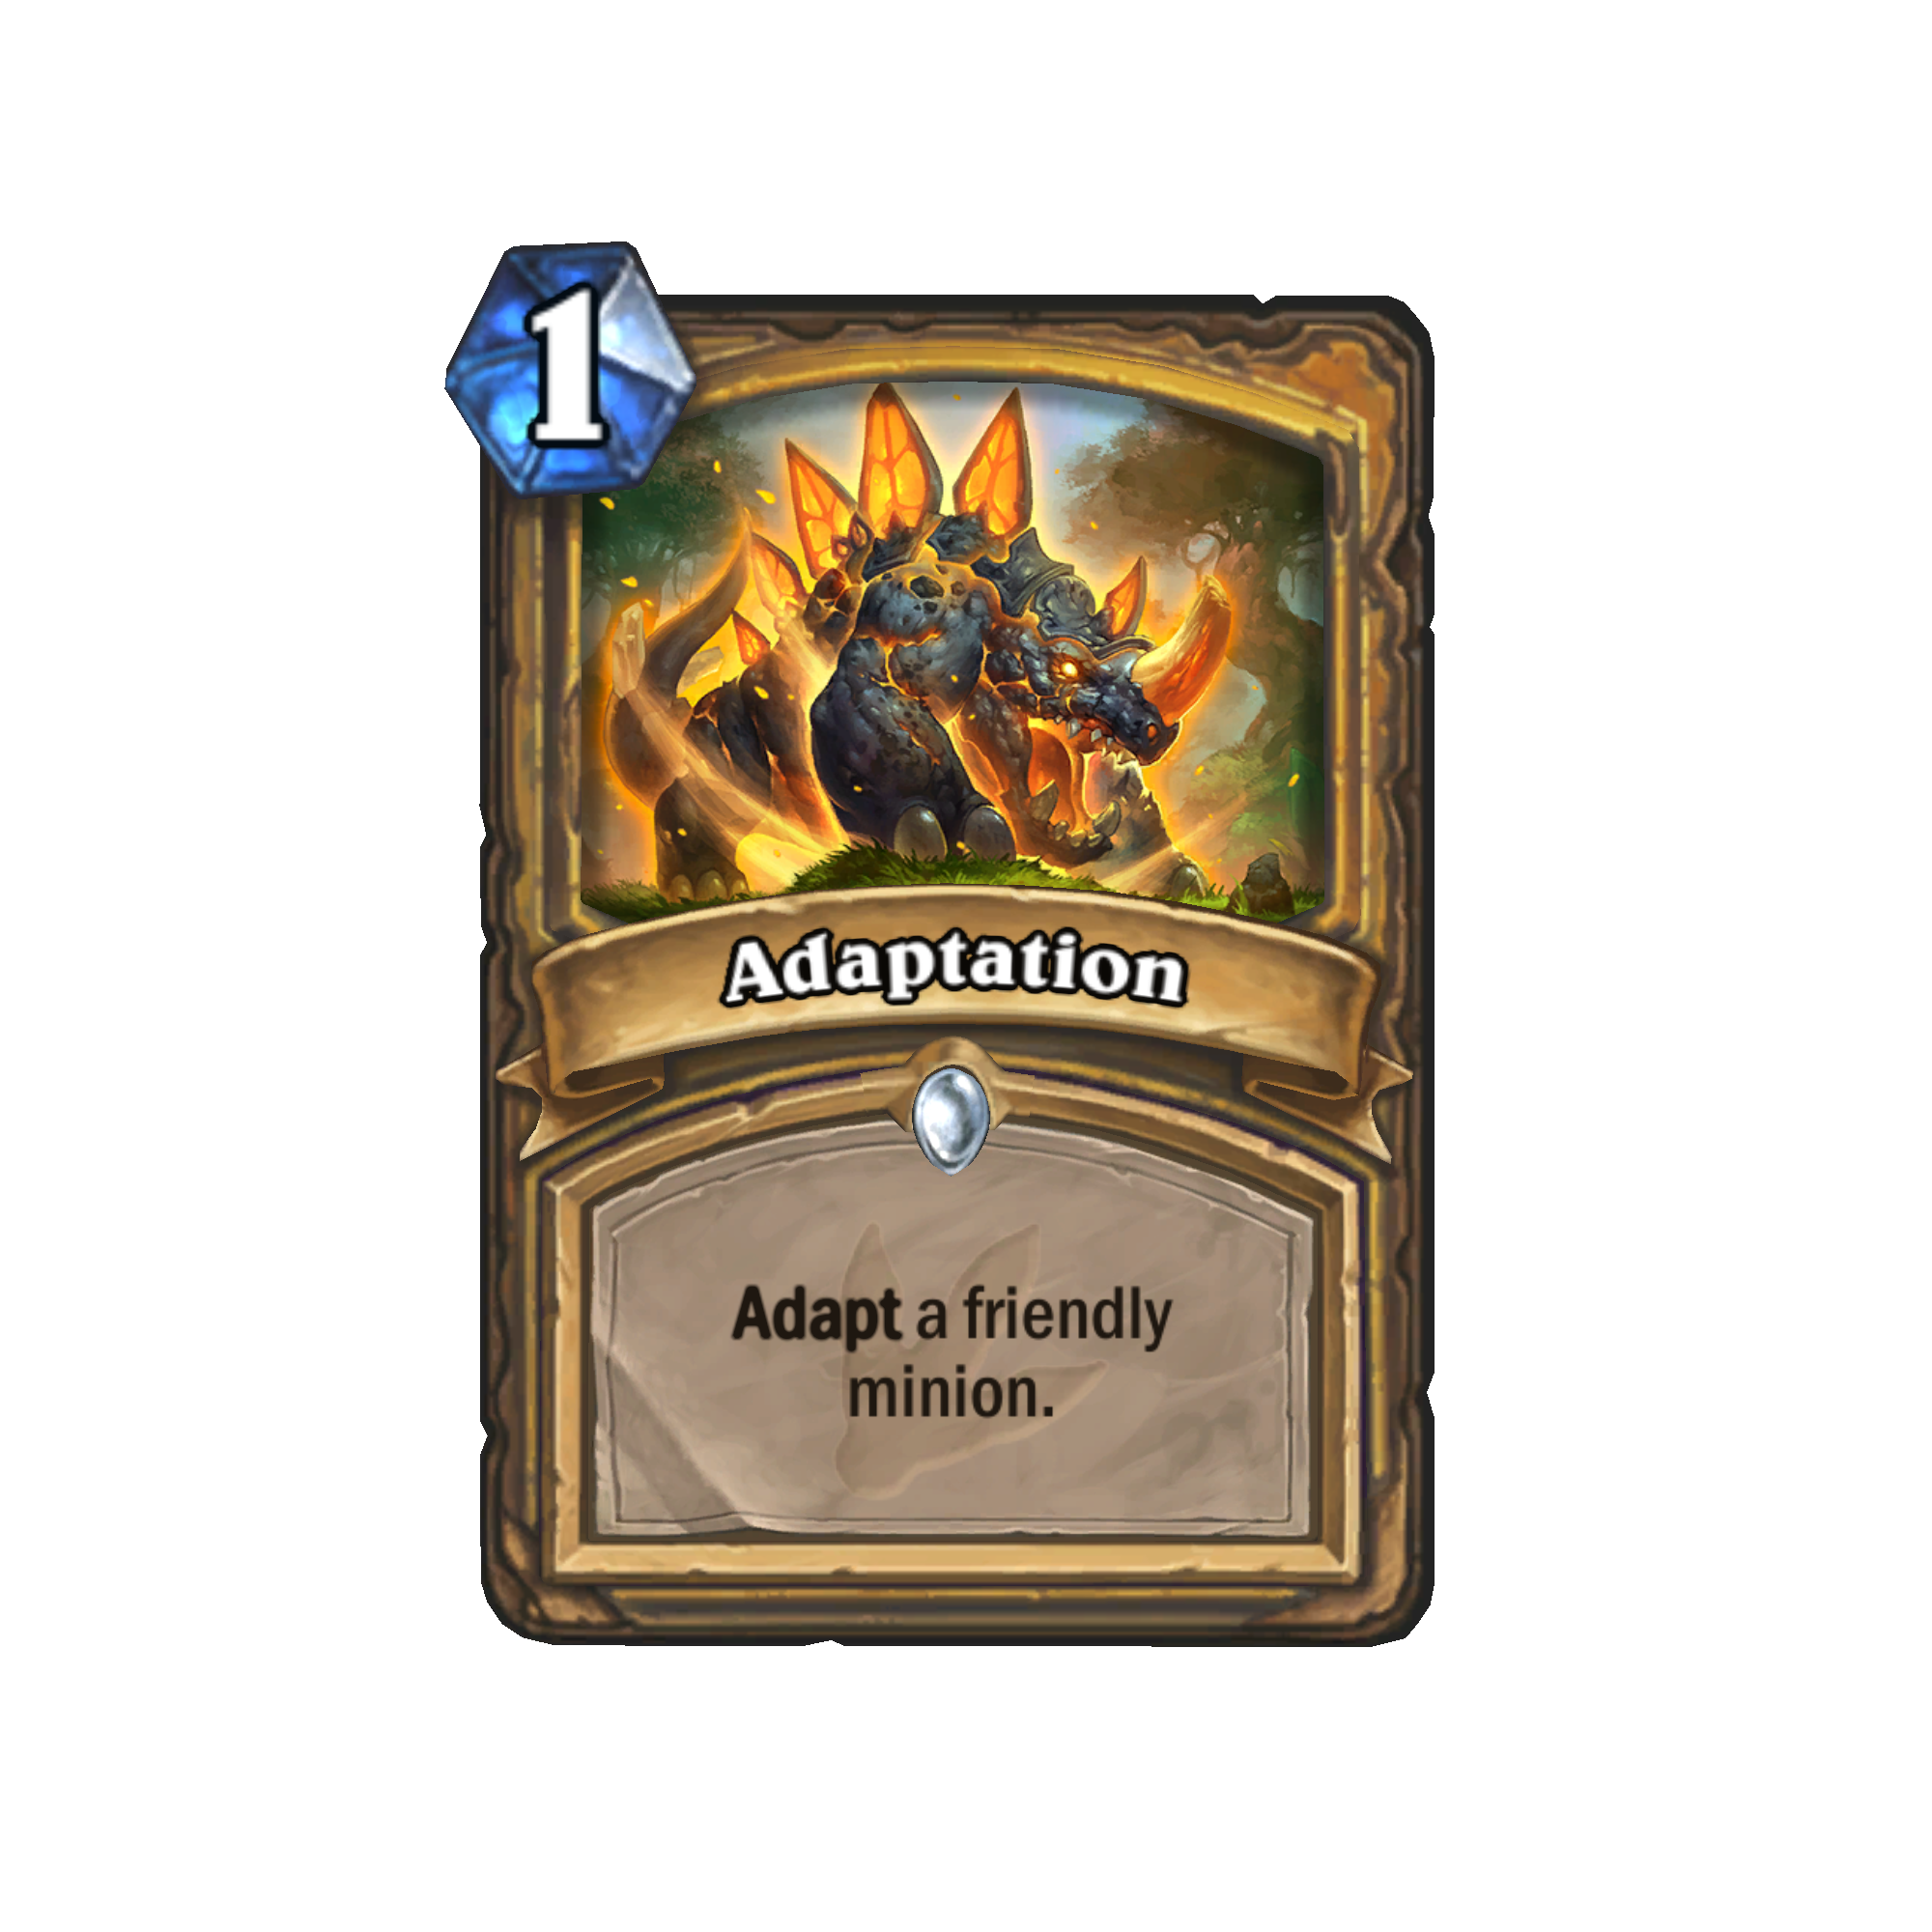 Hearthstone PNG Image - Hearthstone PNG